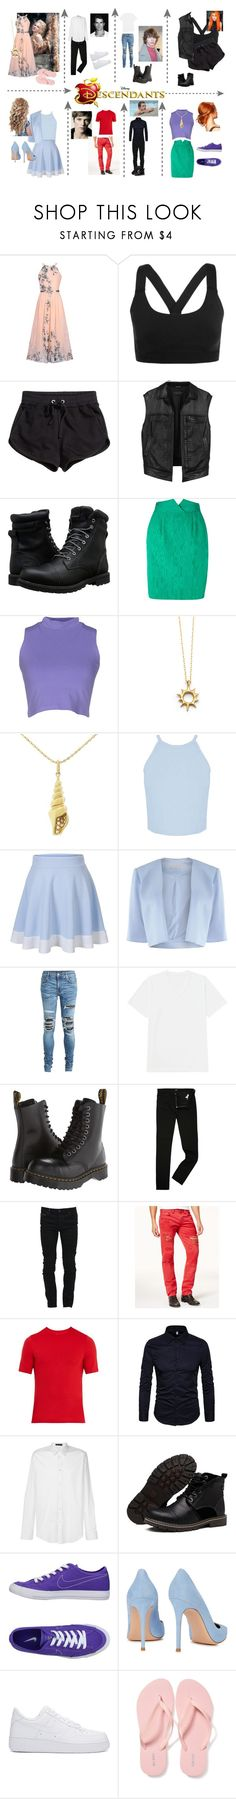 """""""Descendants"""" by tfryer ❤ liked on Polyvore featuring Disney, WithChic, Ivy Park, H&M, rag & bone, Timberland, Christian Dior, Silvian Heach, Sydney Evan and Miss Selfridge"""